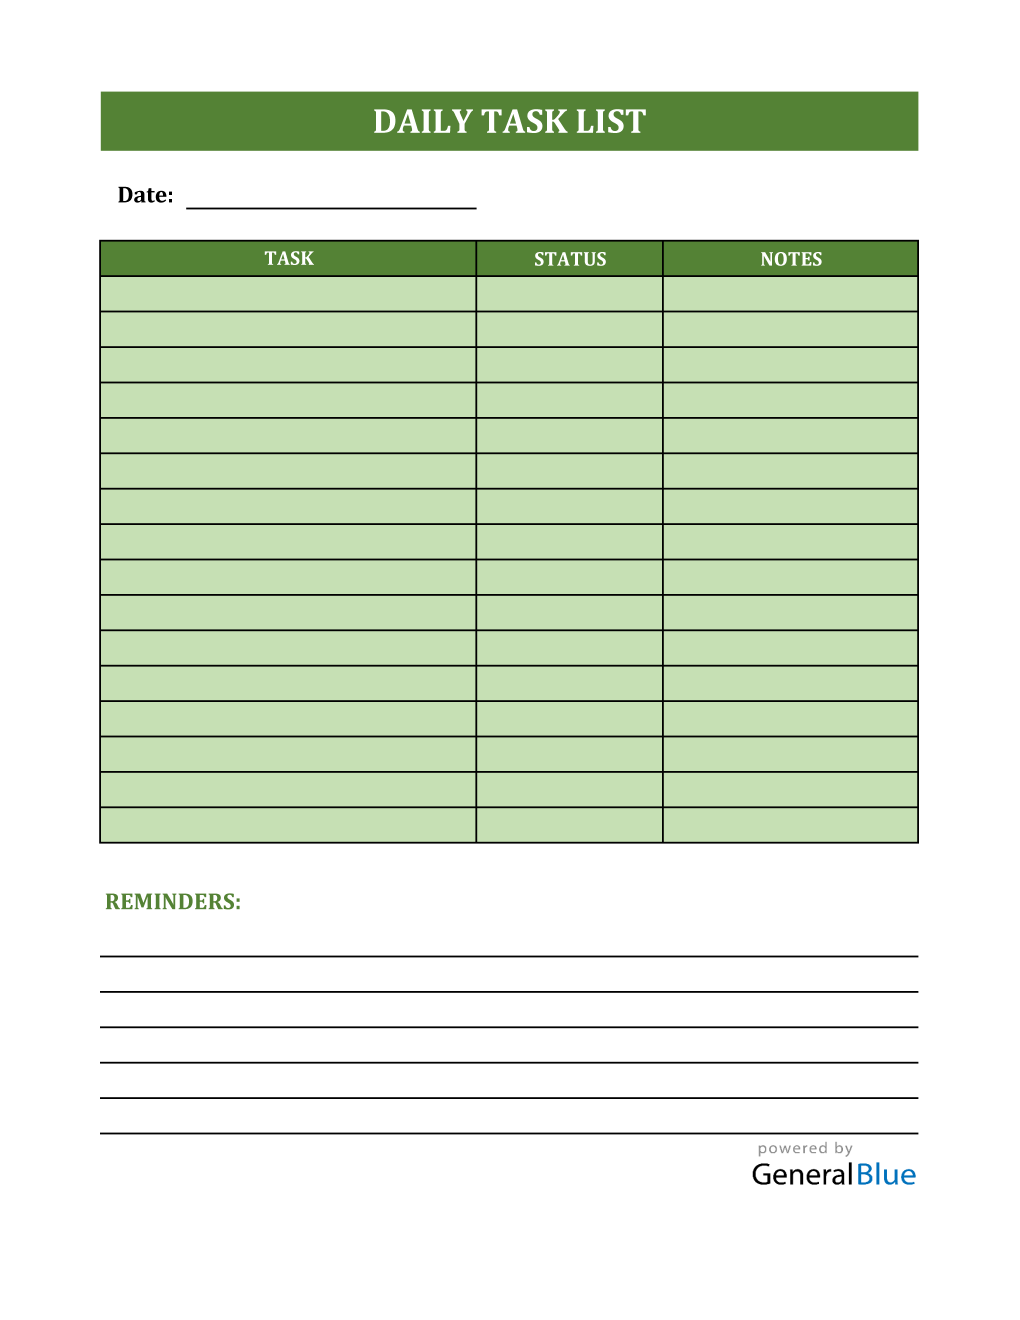 Daily Task List Template in Excel